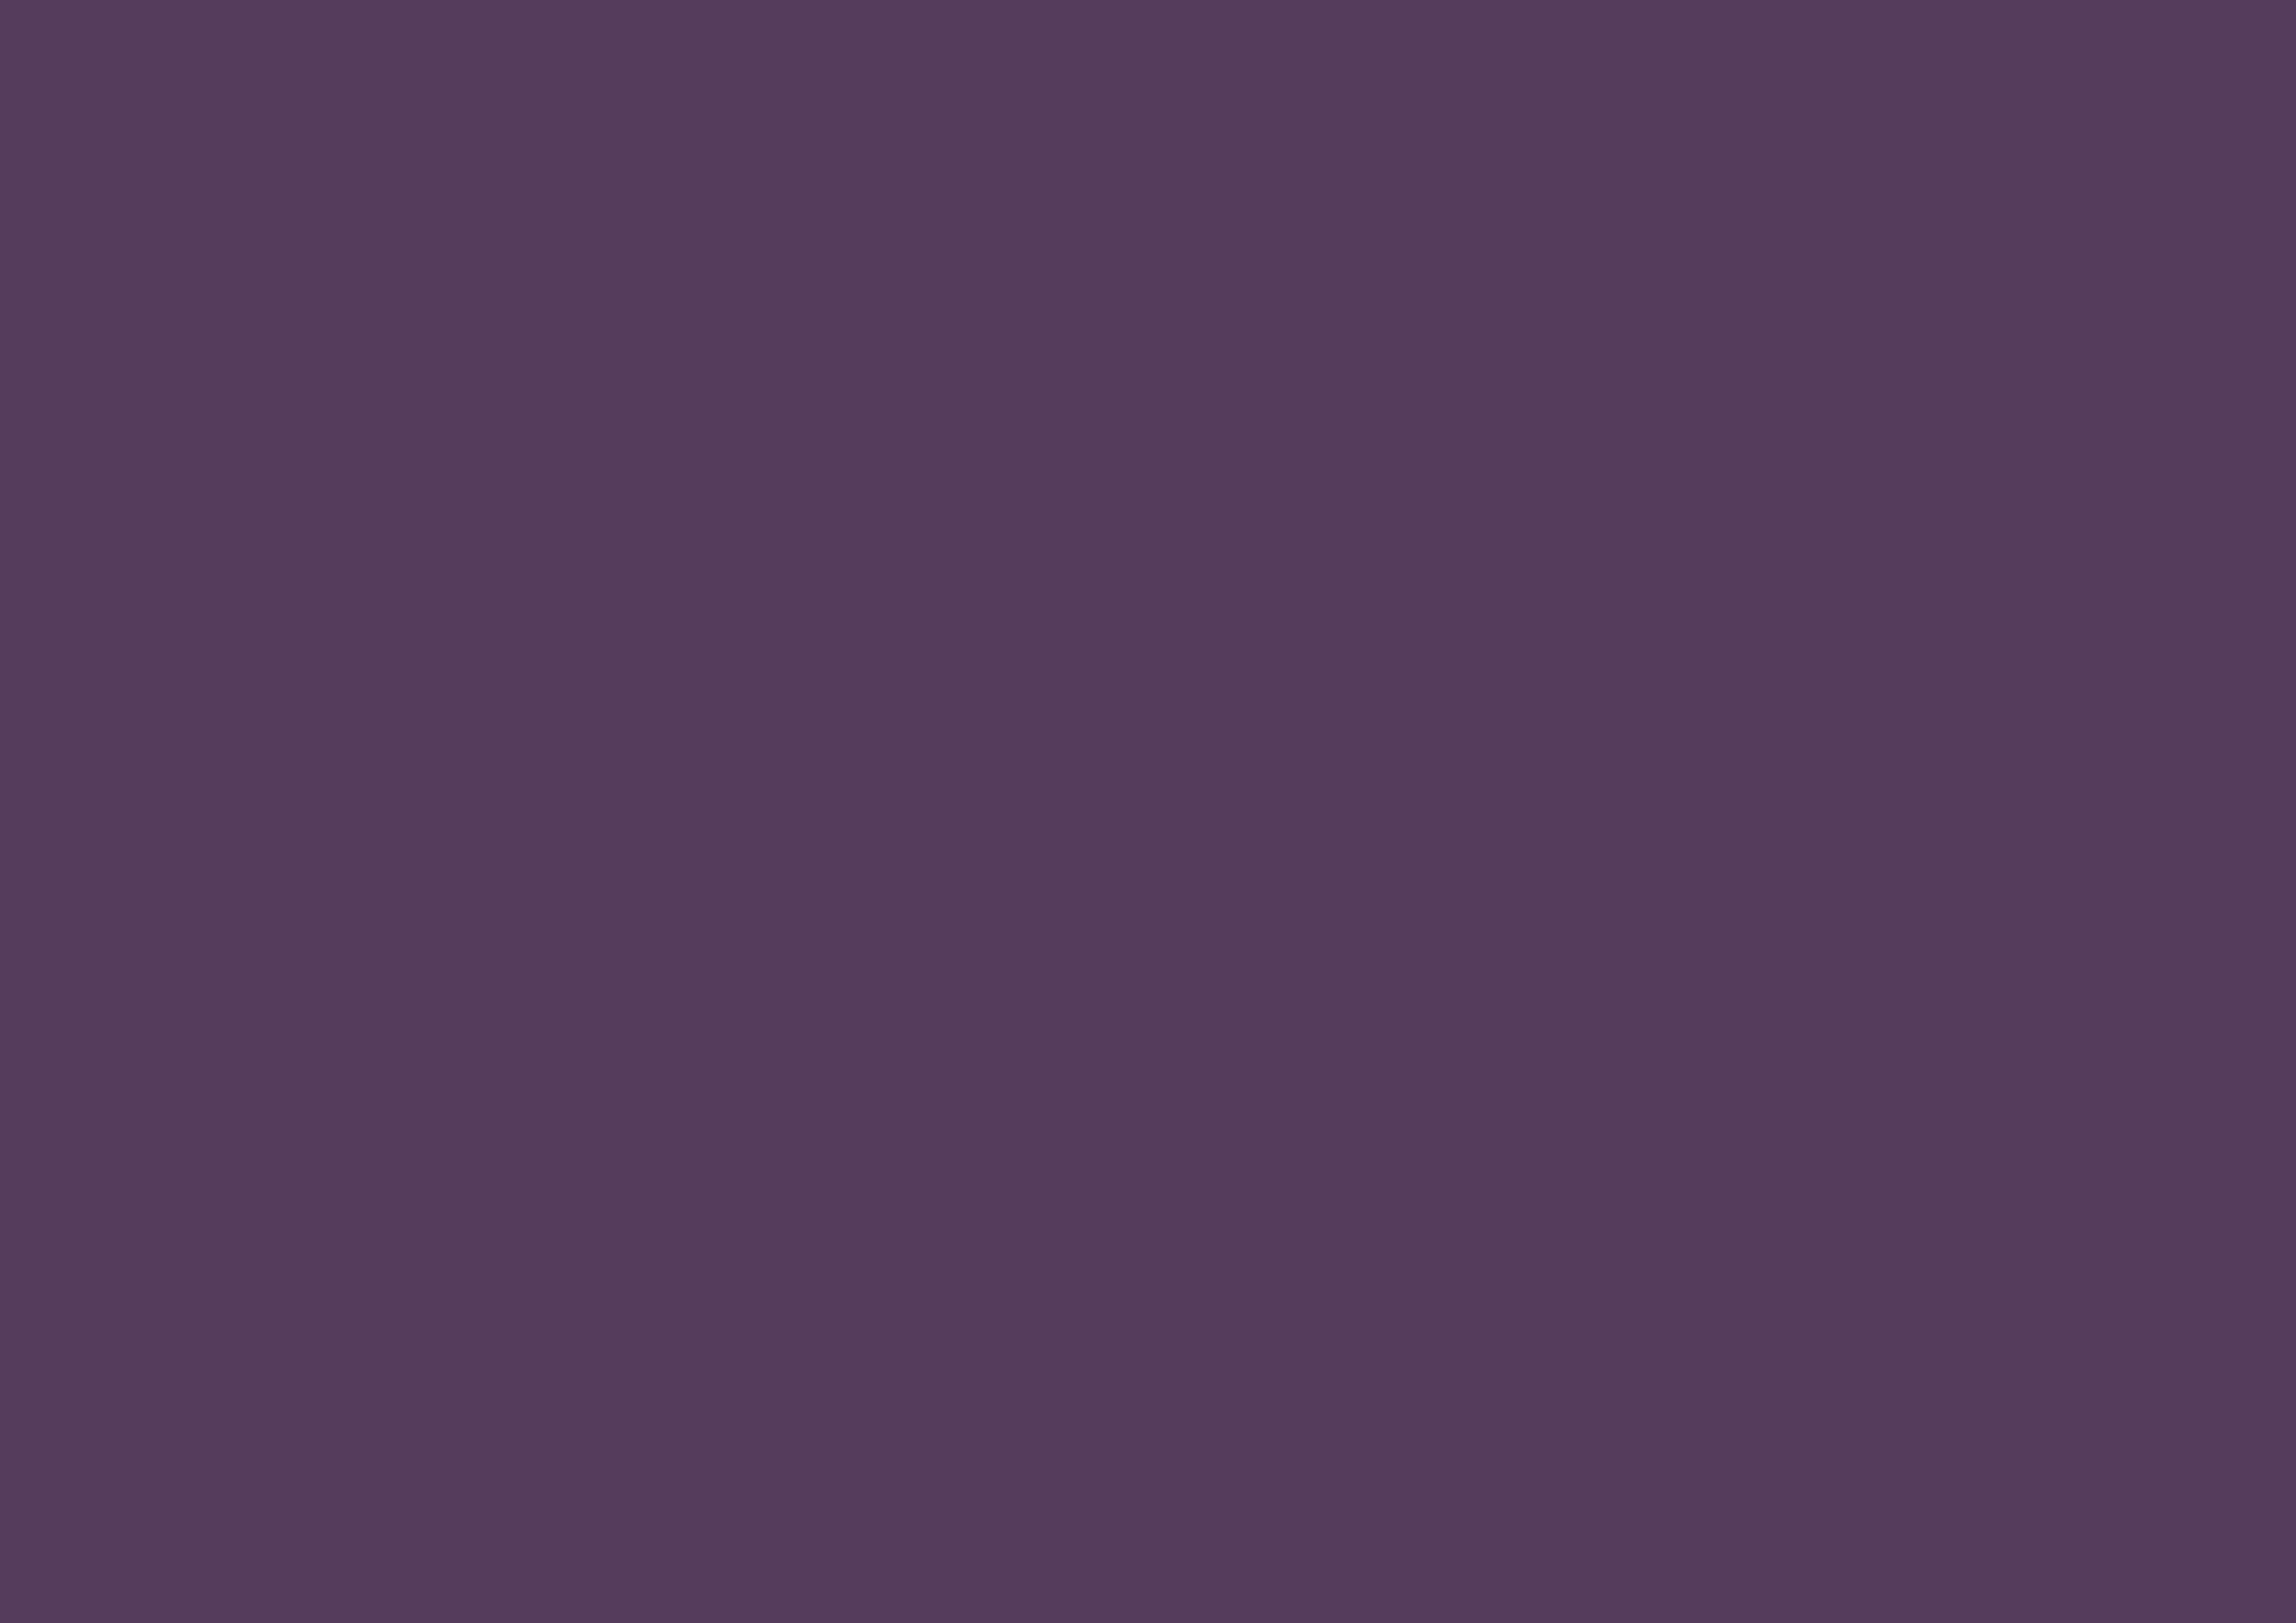 3508x2480 English Violet Solid Color Background